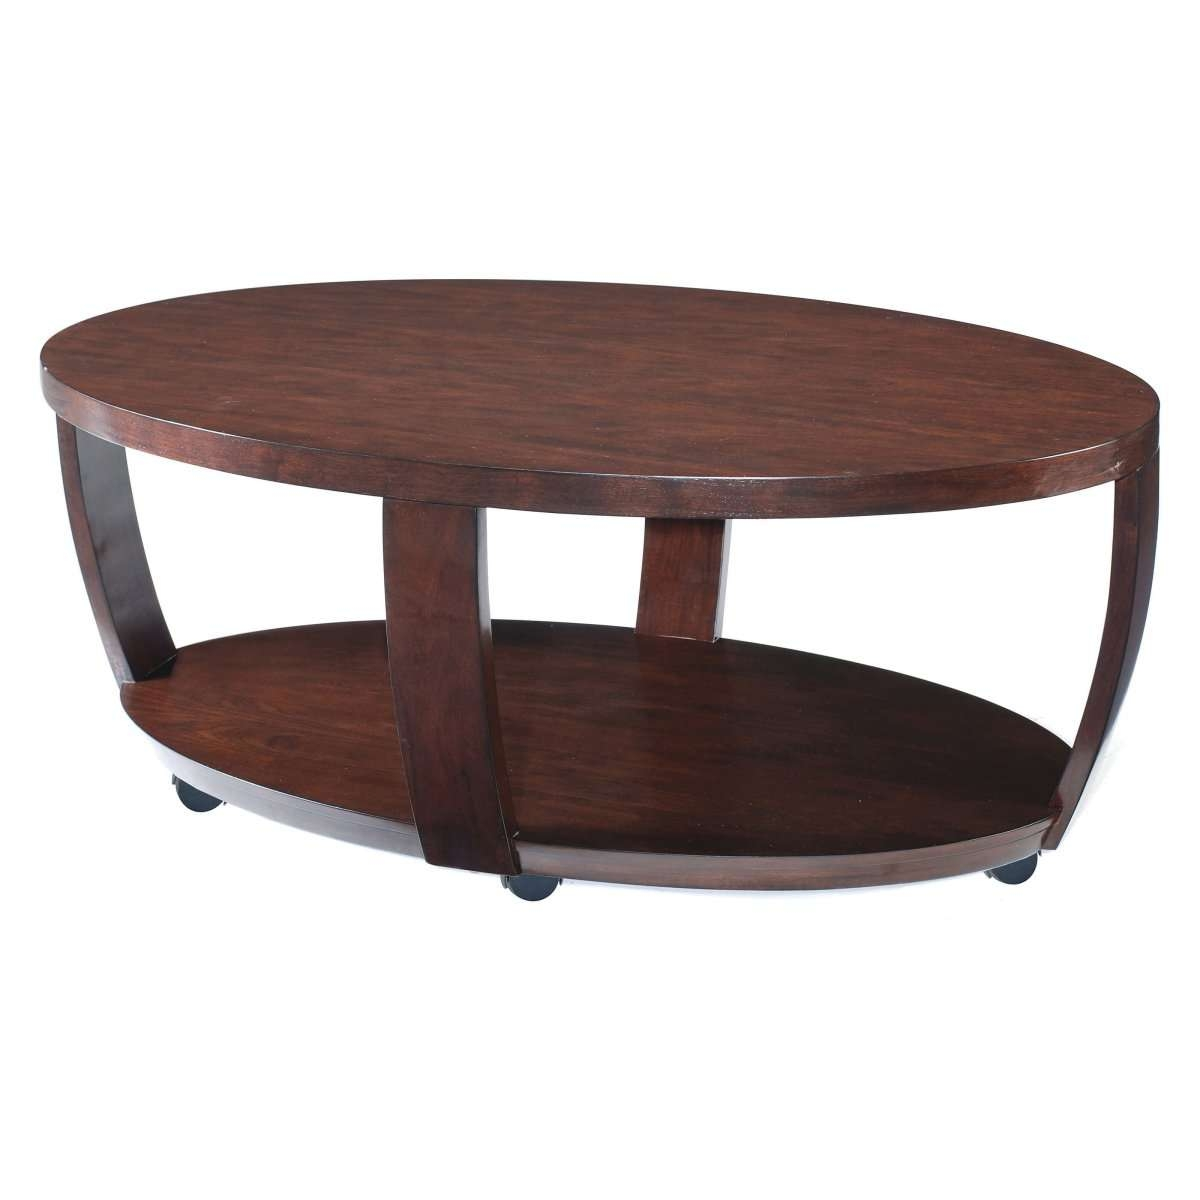 Well Known Metal Oval Coffee Tables Regarding Coffee Tables : Oval Wood Coffee Table Wooden Sets Dark Cherry (View 17 of 20)